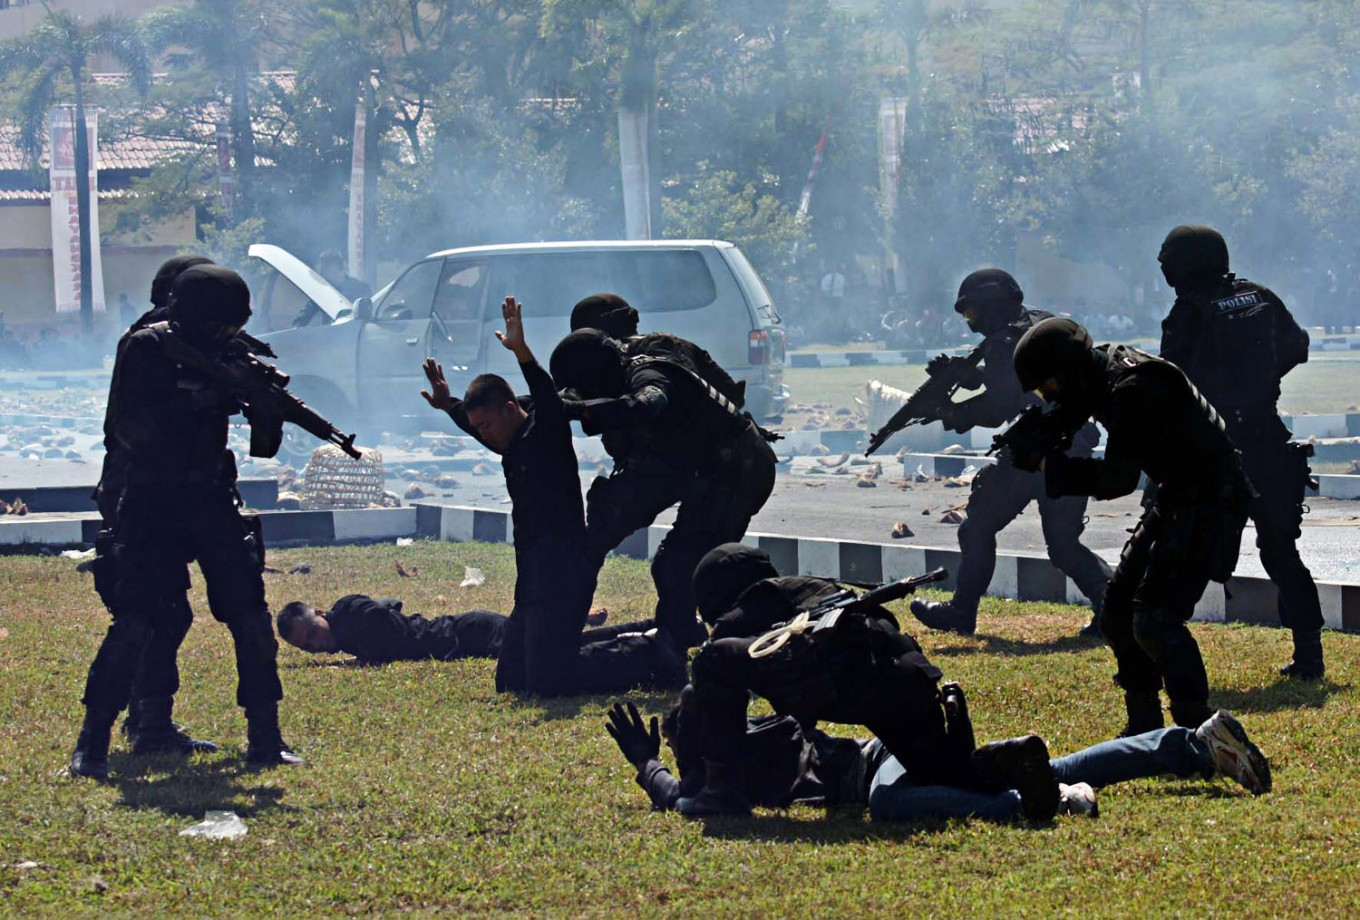 Terror attacks in Indonesia mostly funded from overseas: PPATK